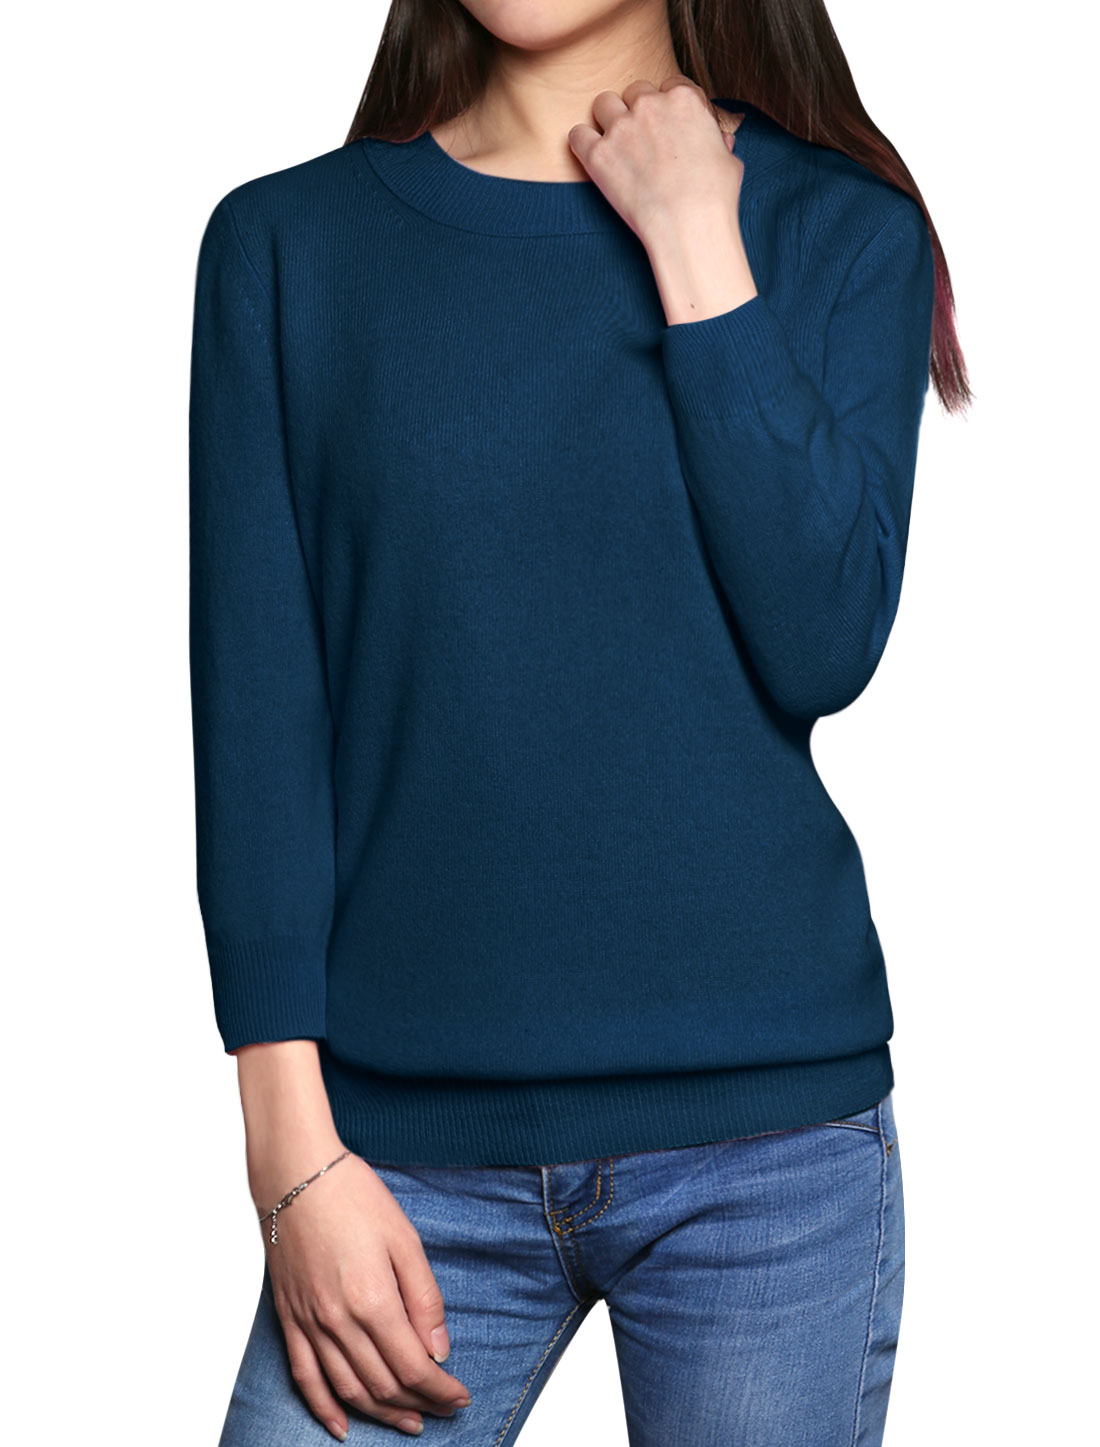 Women Crew Neck Pullover Cashmere Sweater Blue XL